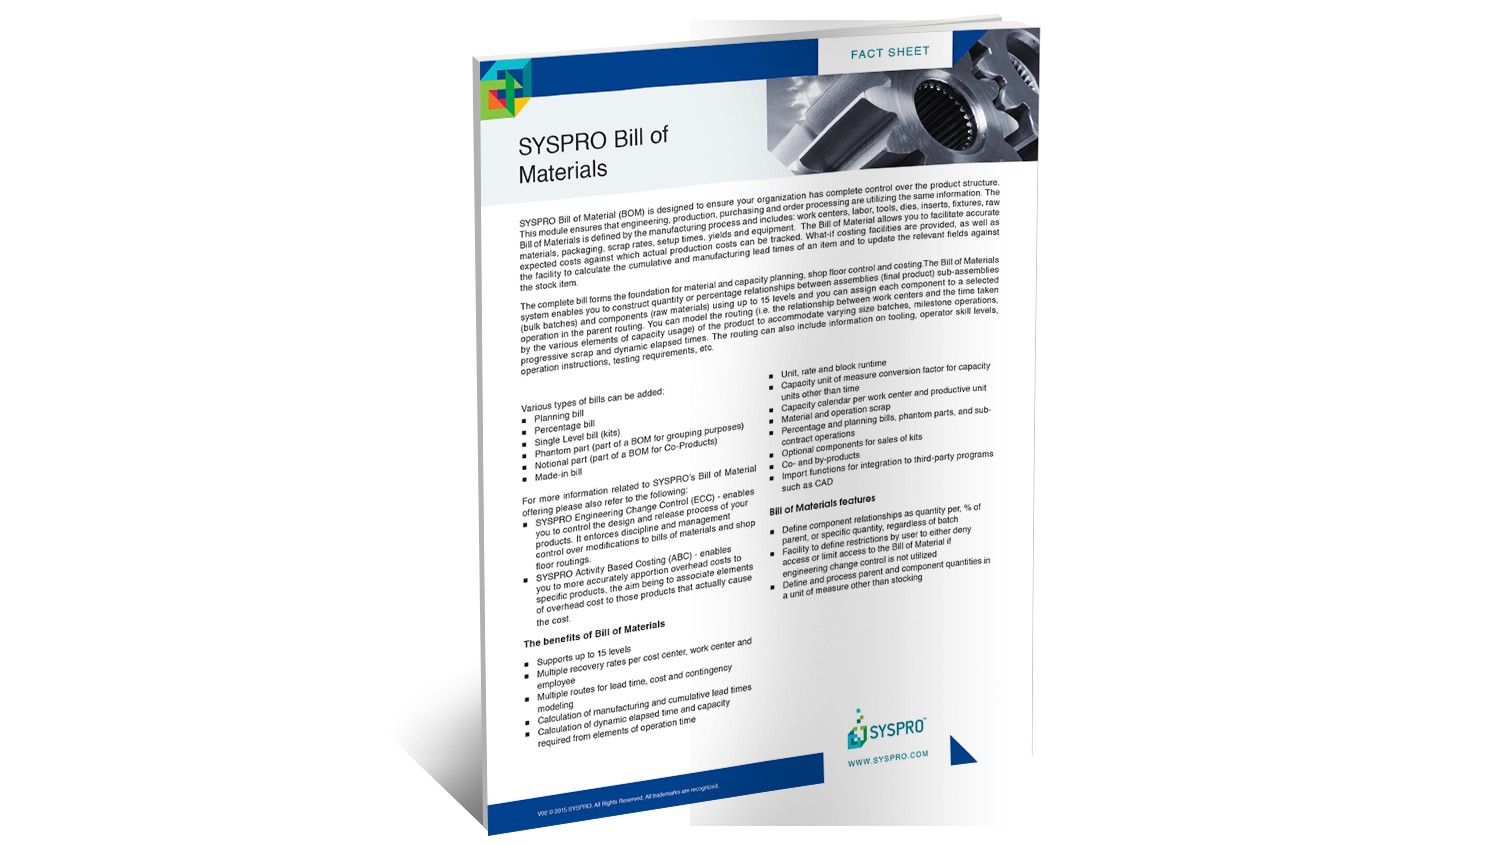 SYSPRO Bill of Materials Brochure